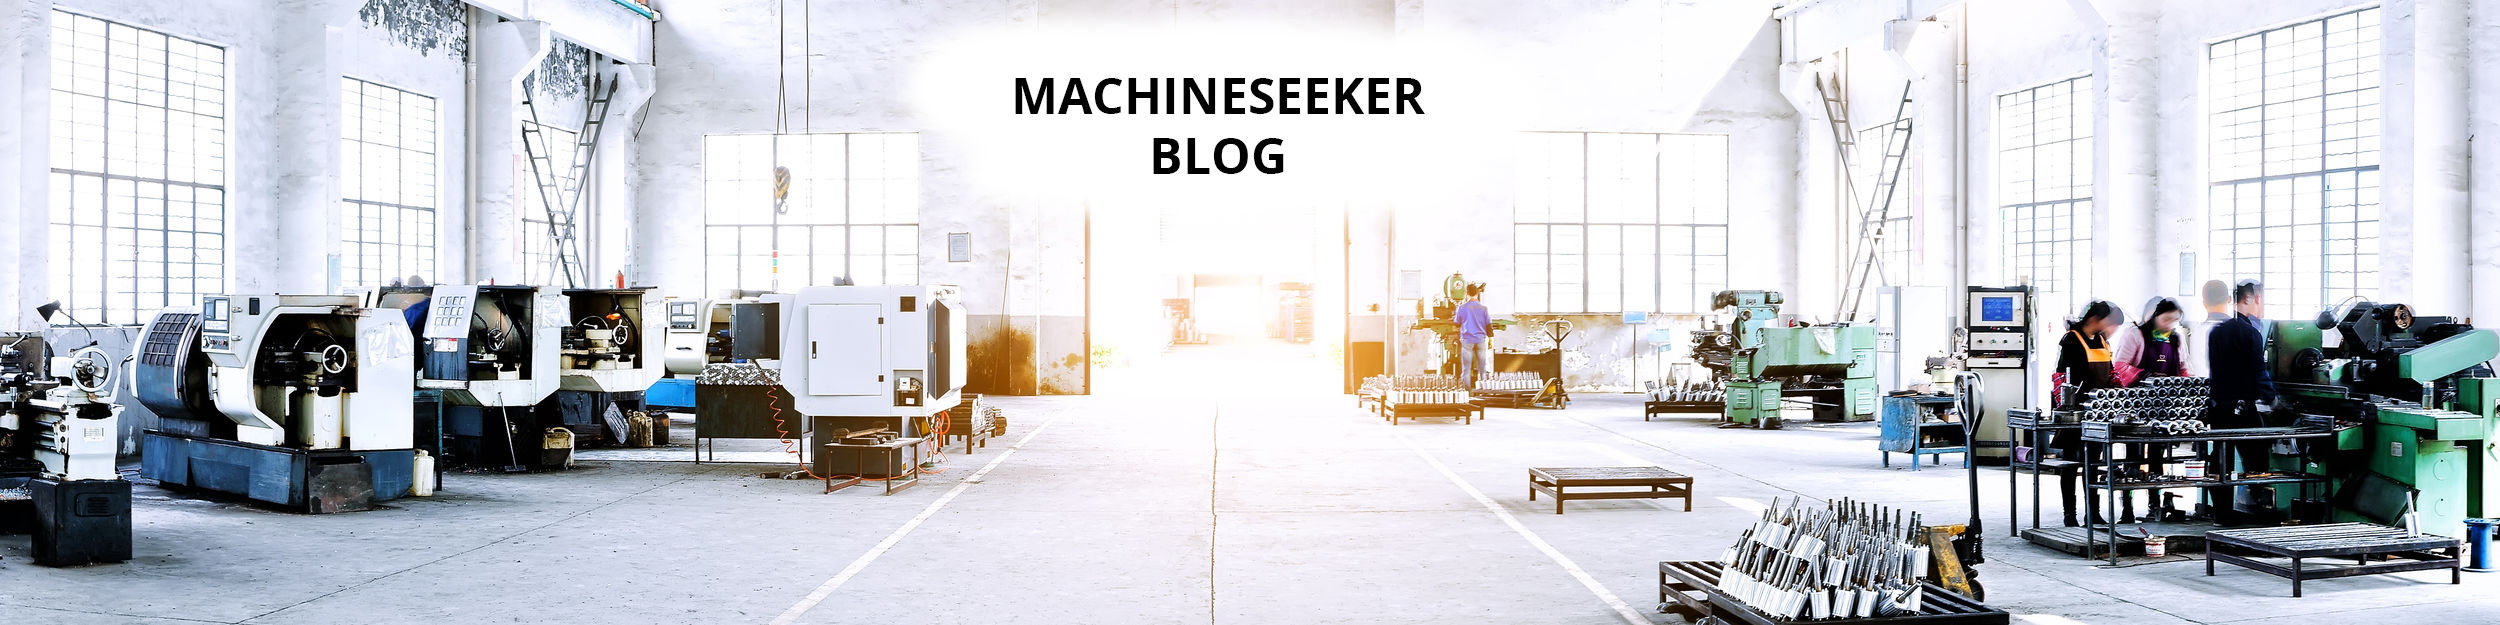 Machineseeker Blog - 27e46b8ca49